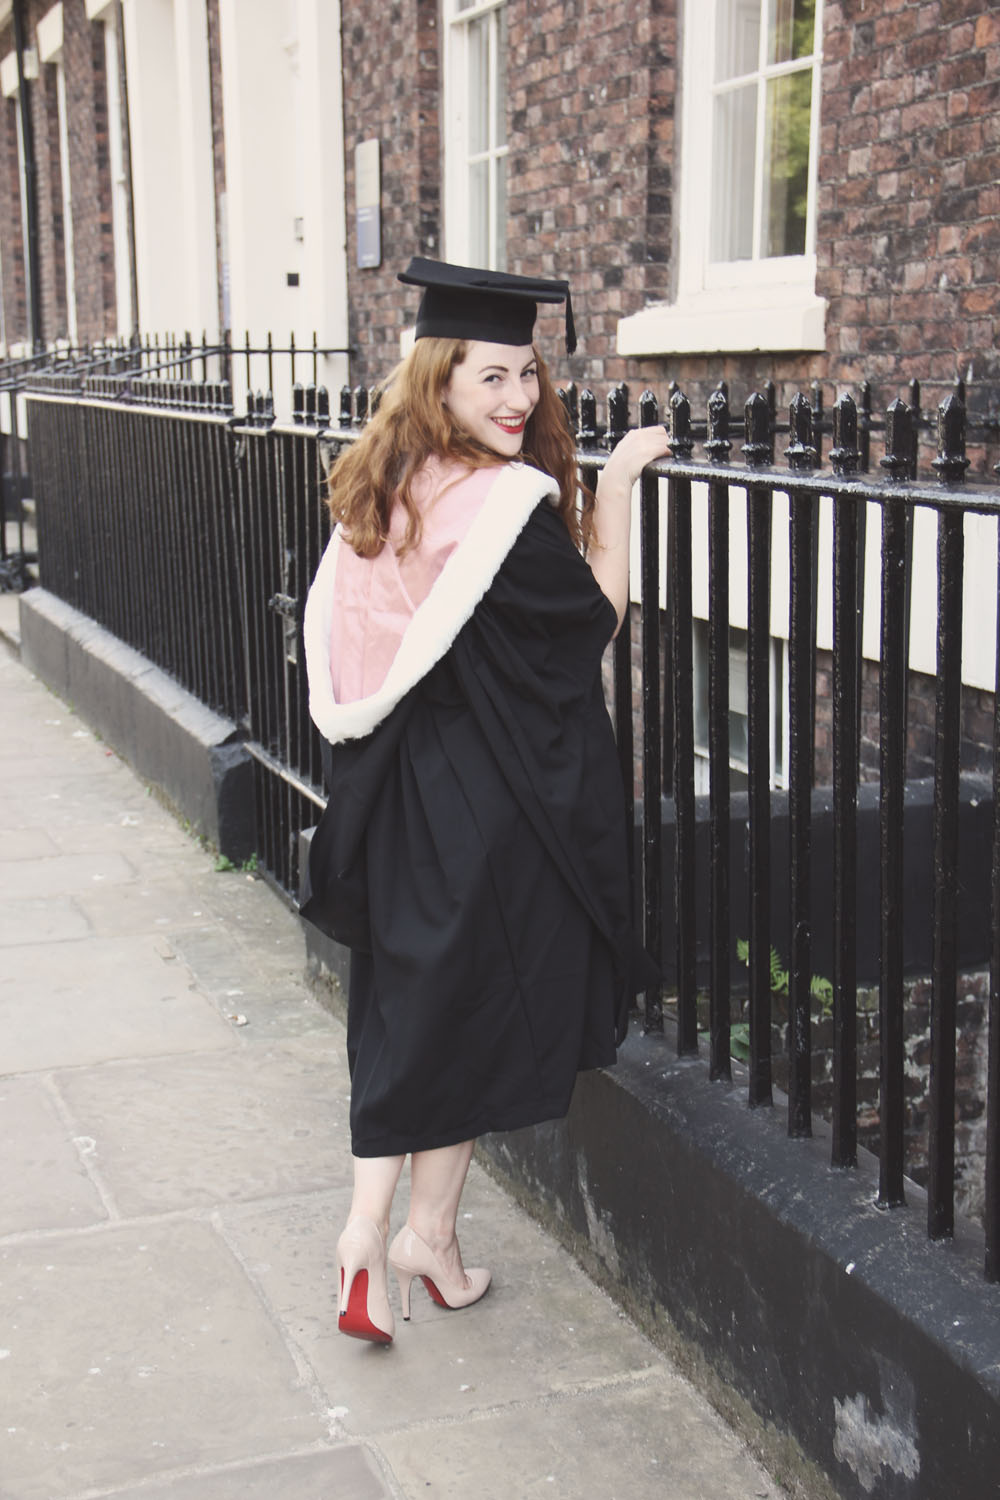 it's cohen - uk style blog: what to wear for graduation